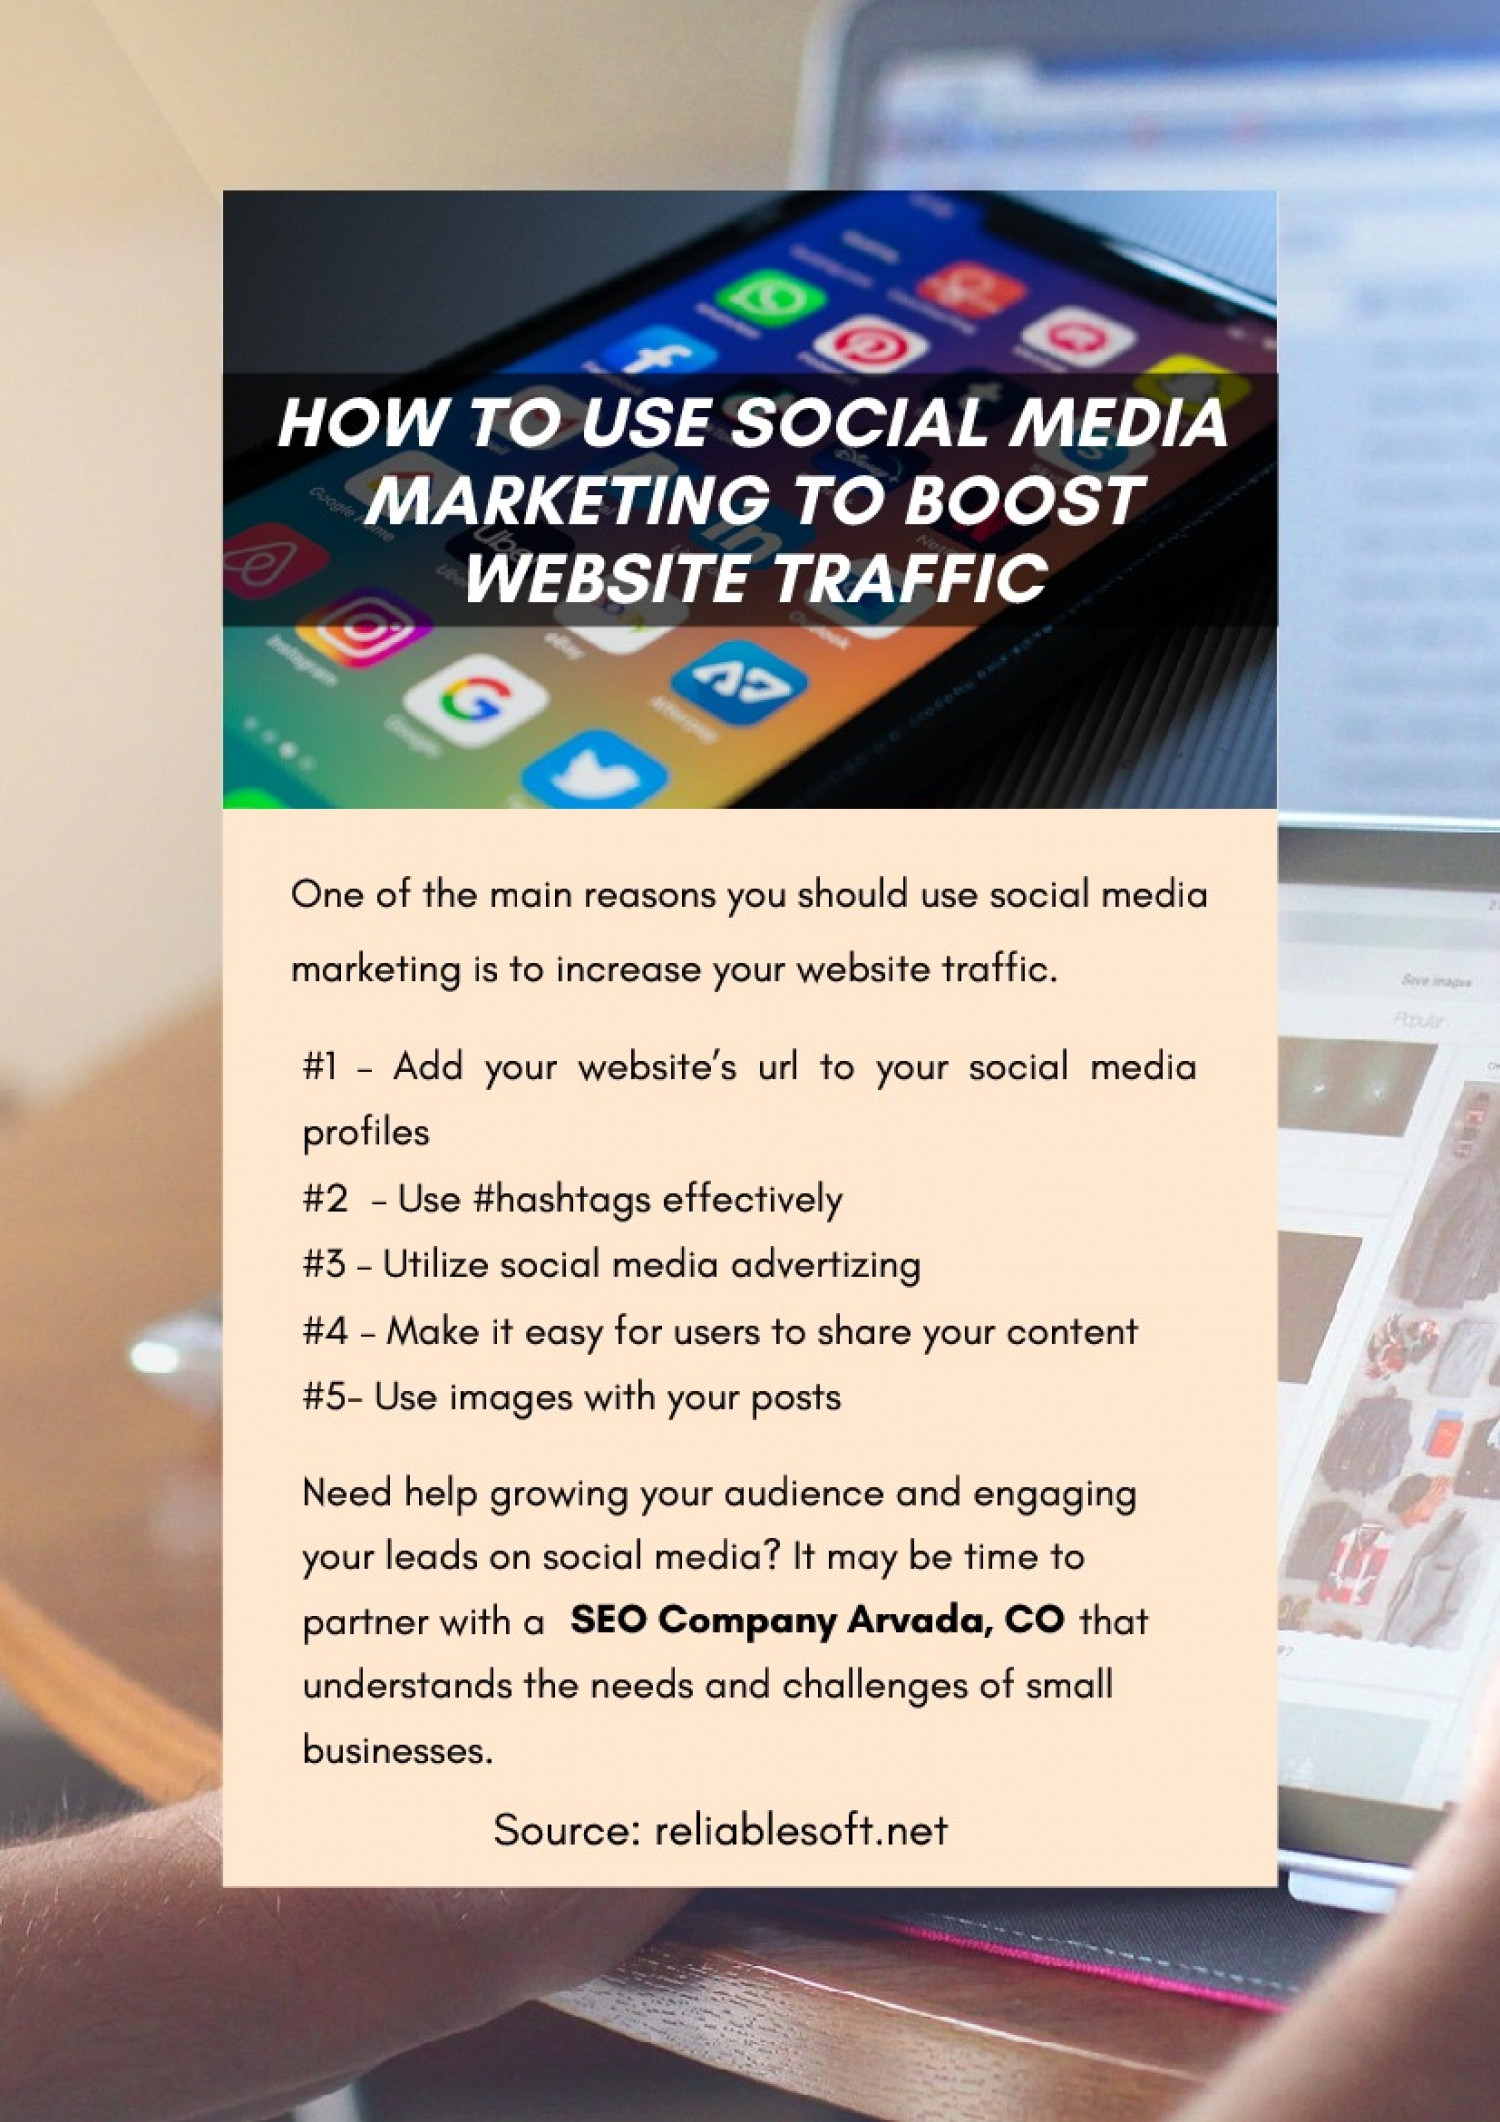 How To Use Social Media Marketing To Boost Website Traffic Infographic